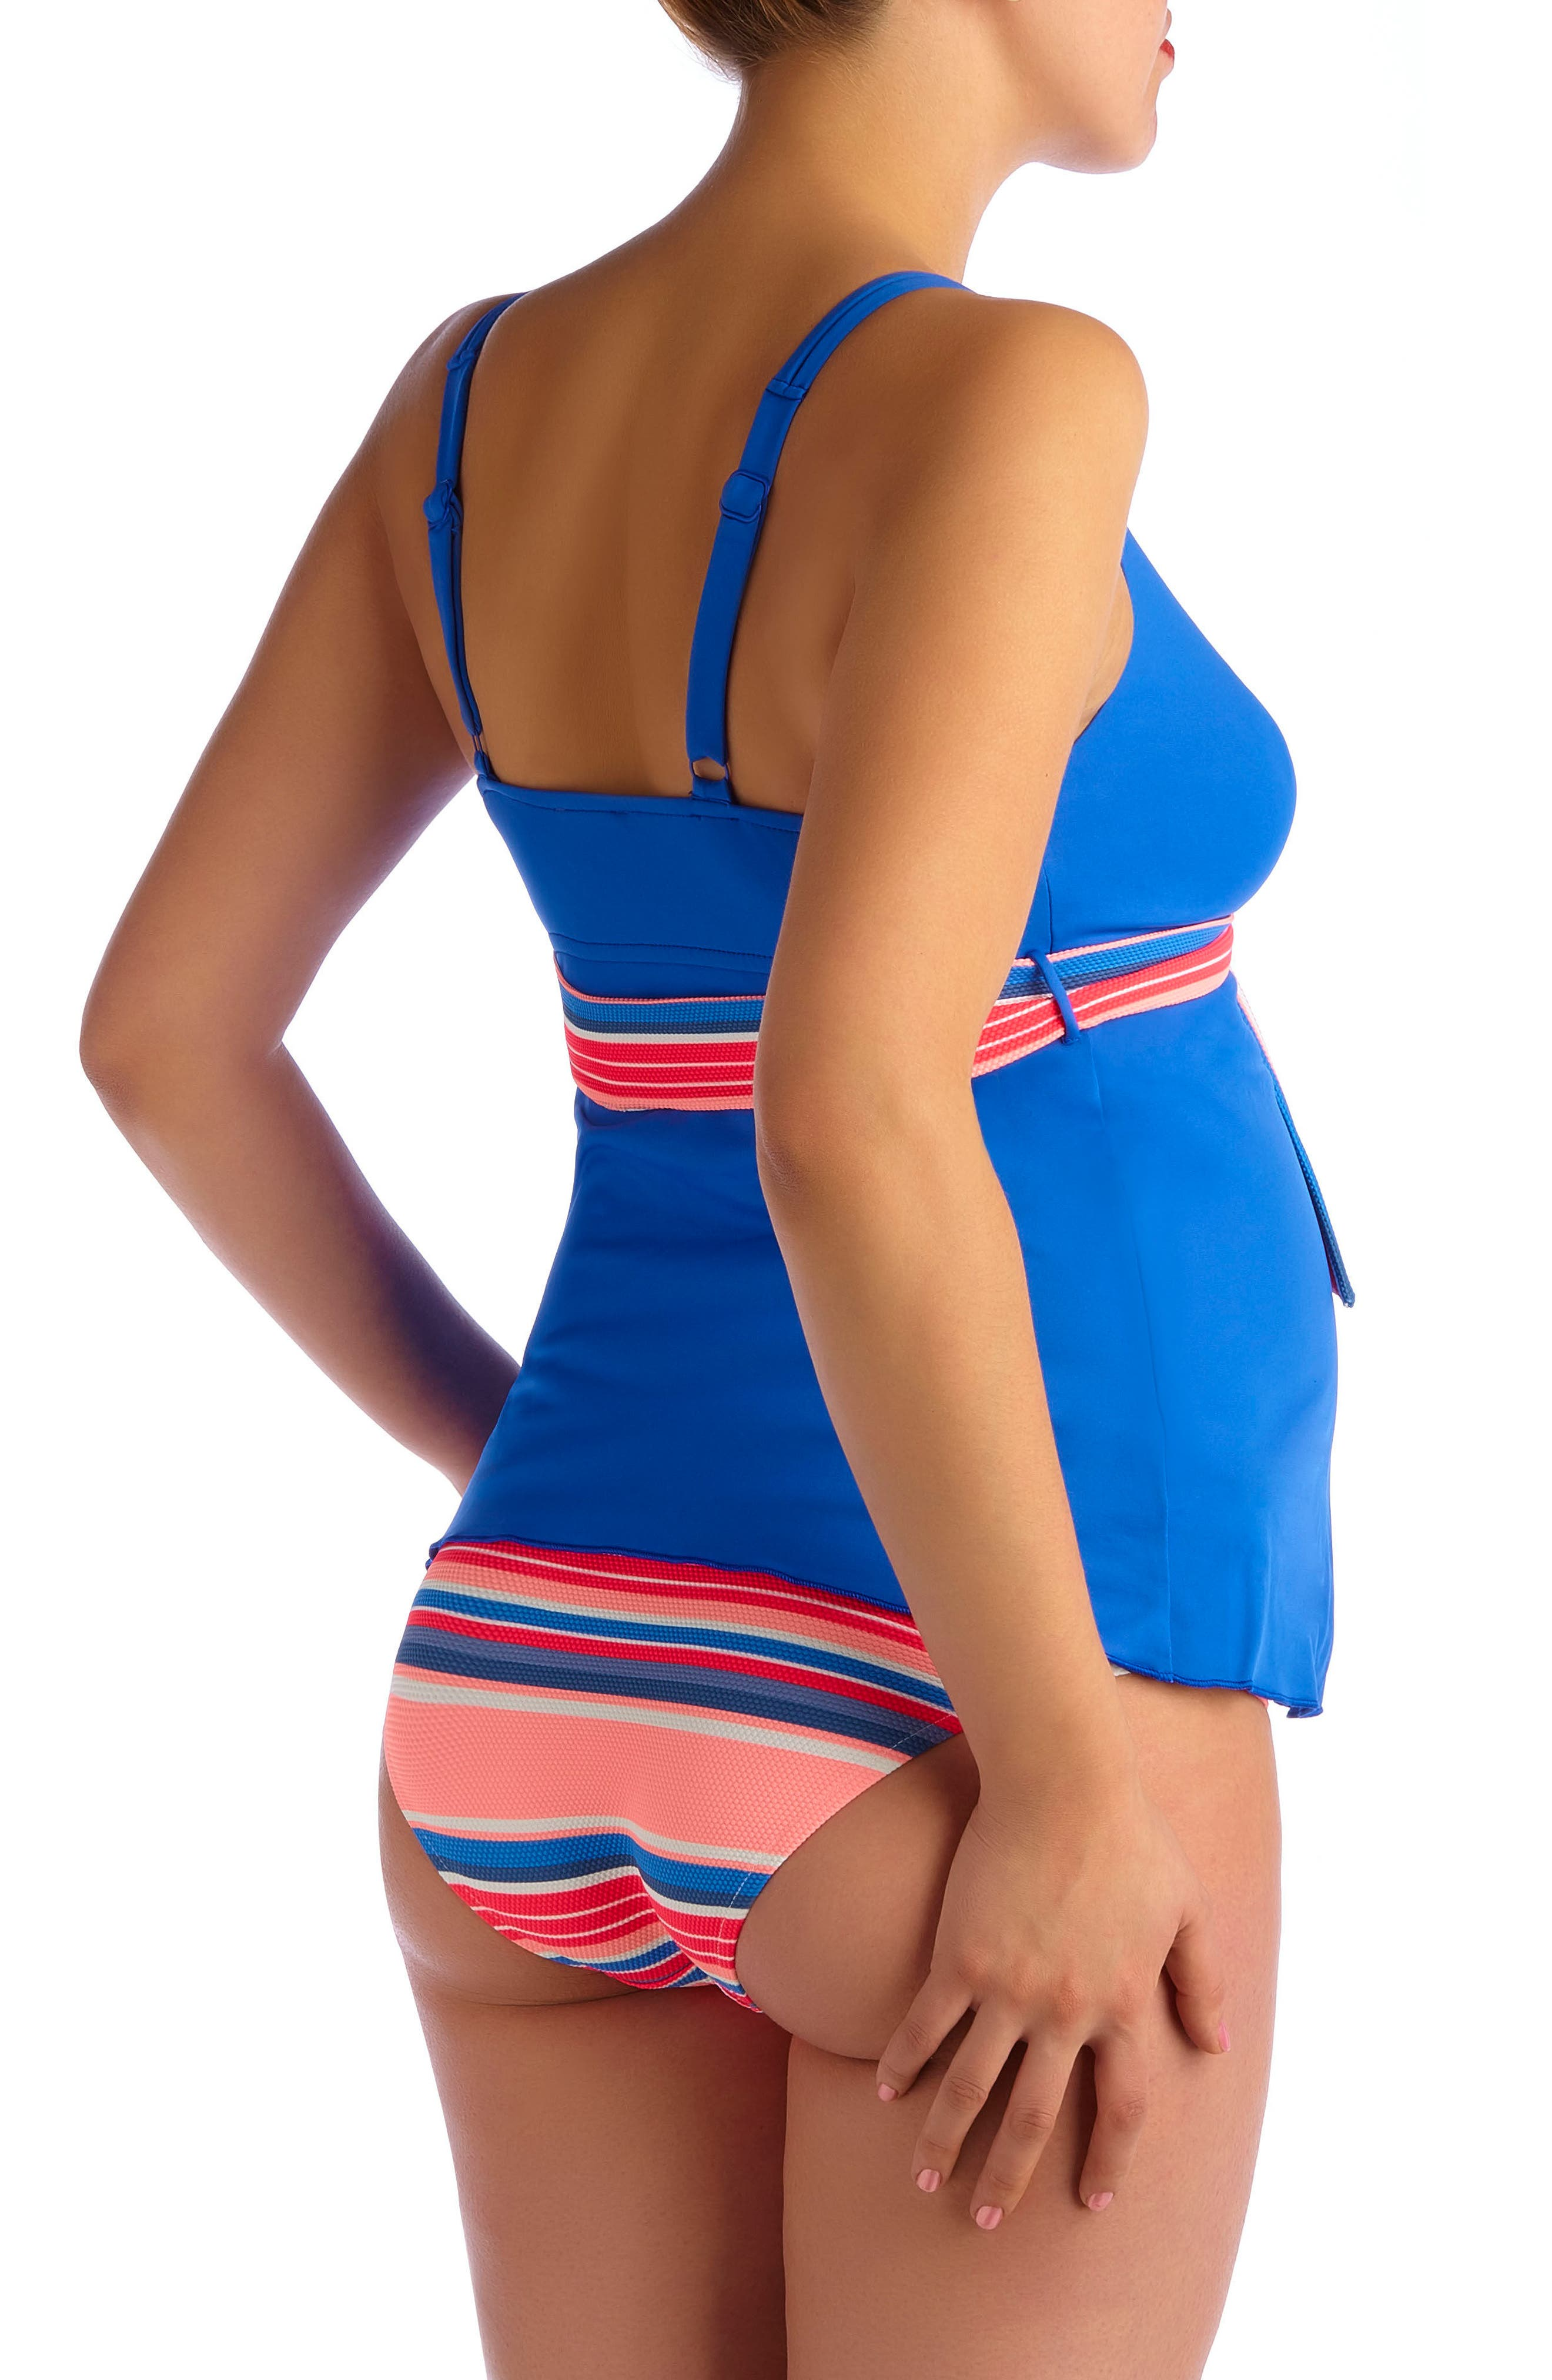 Devon Striped Two-Piece Maternity Swimsuit,                             Alternate thumbnail 2, color,                             BLUE ROYAL